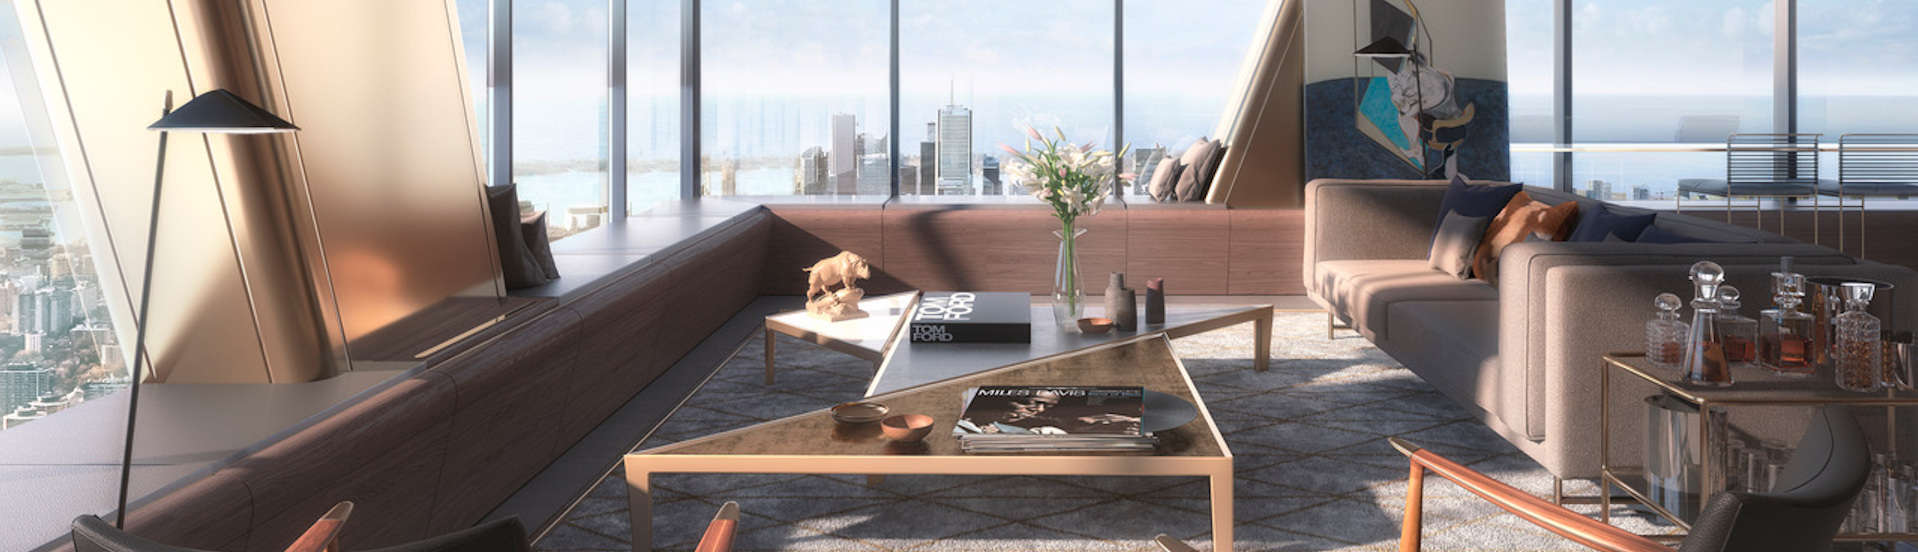 luxury penthouse livingroom view out windows of city